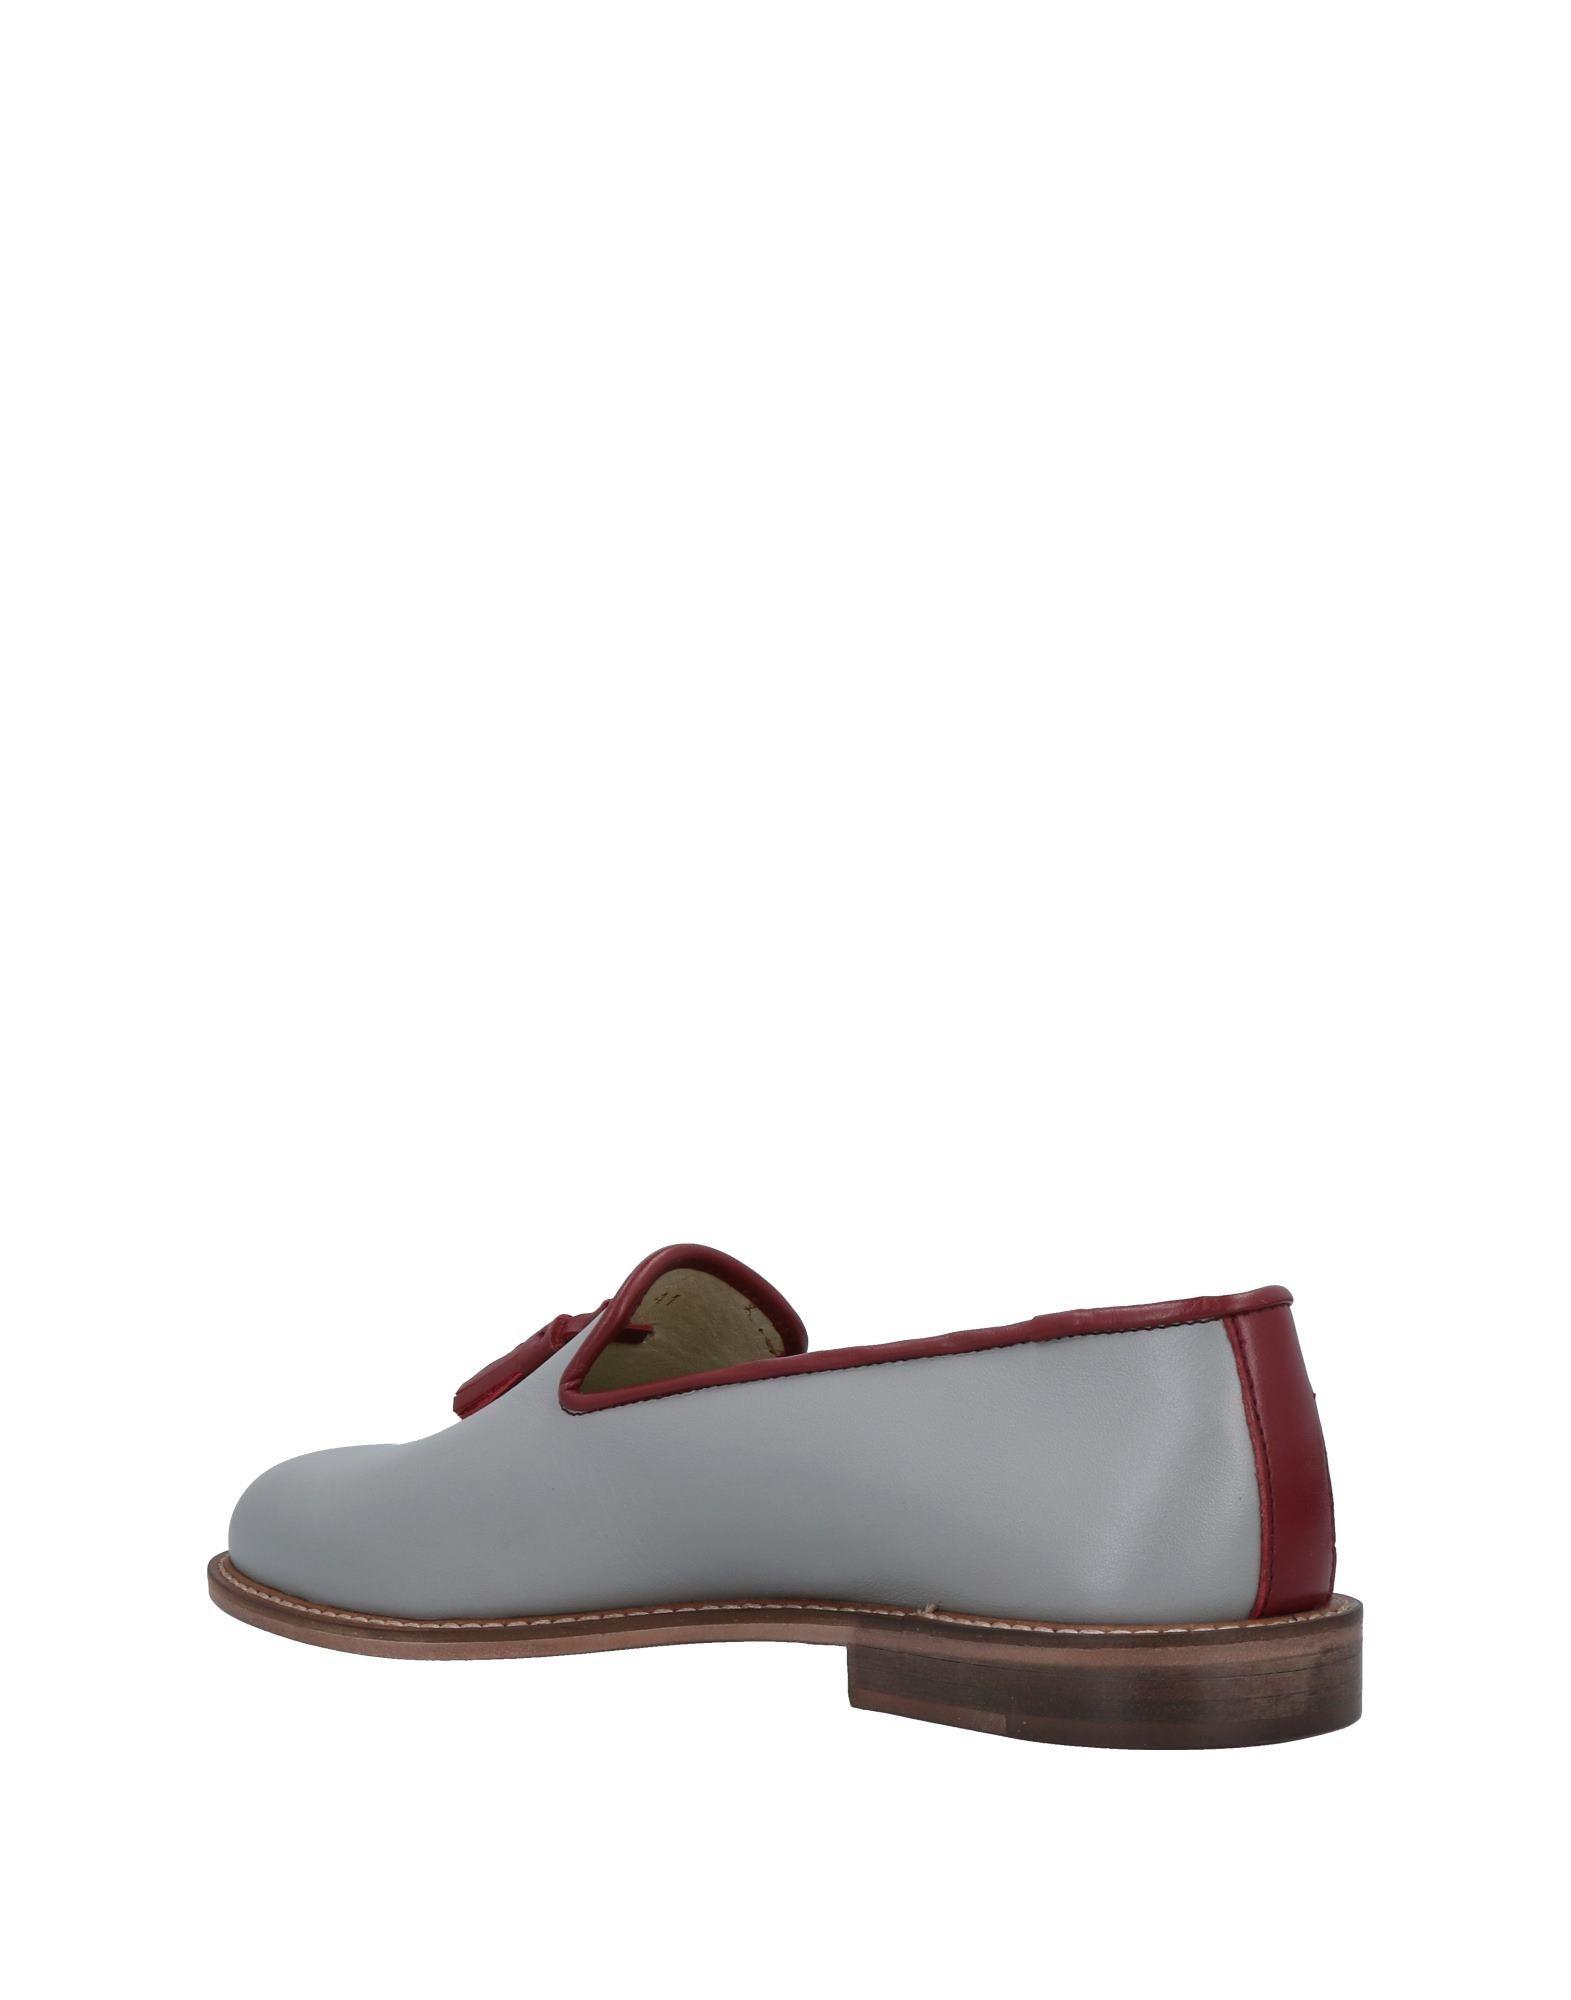 ( Verba ) Leather Loafer in Grey (Grey) for Men